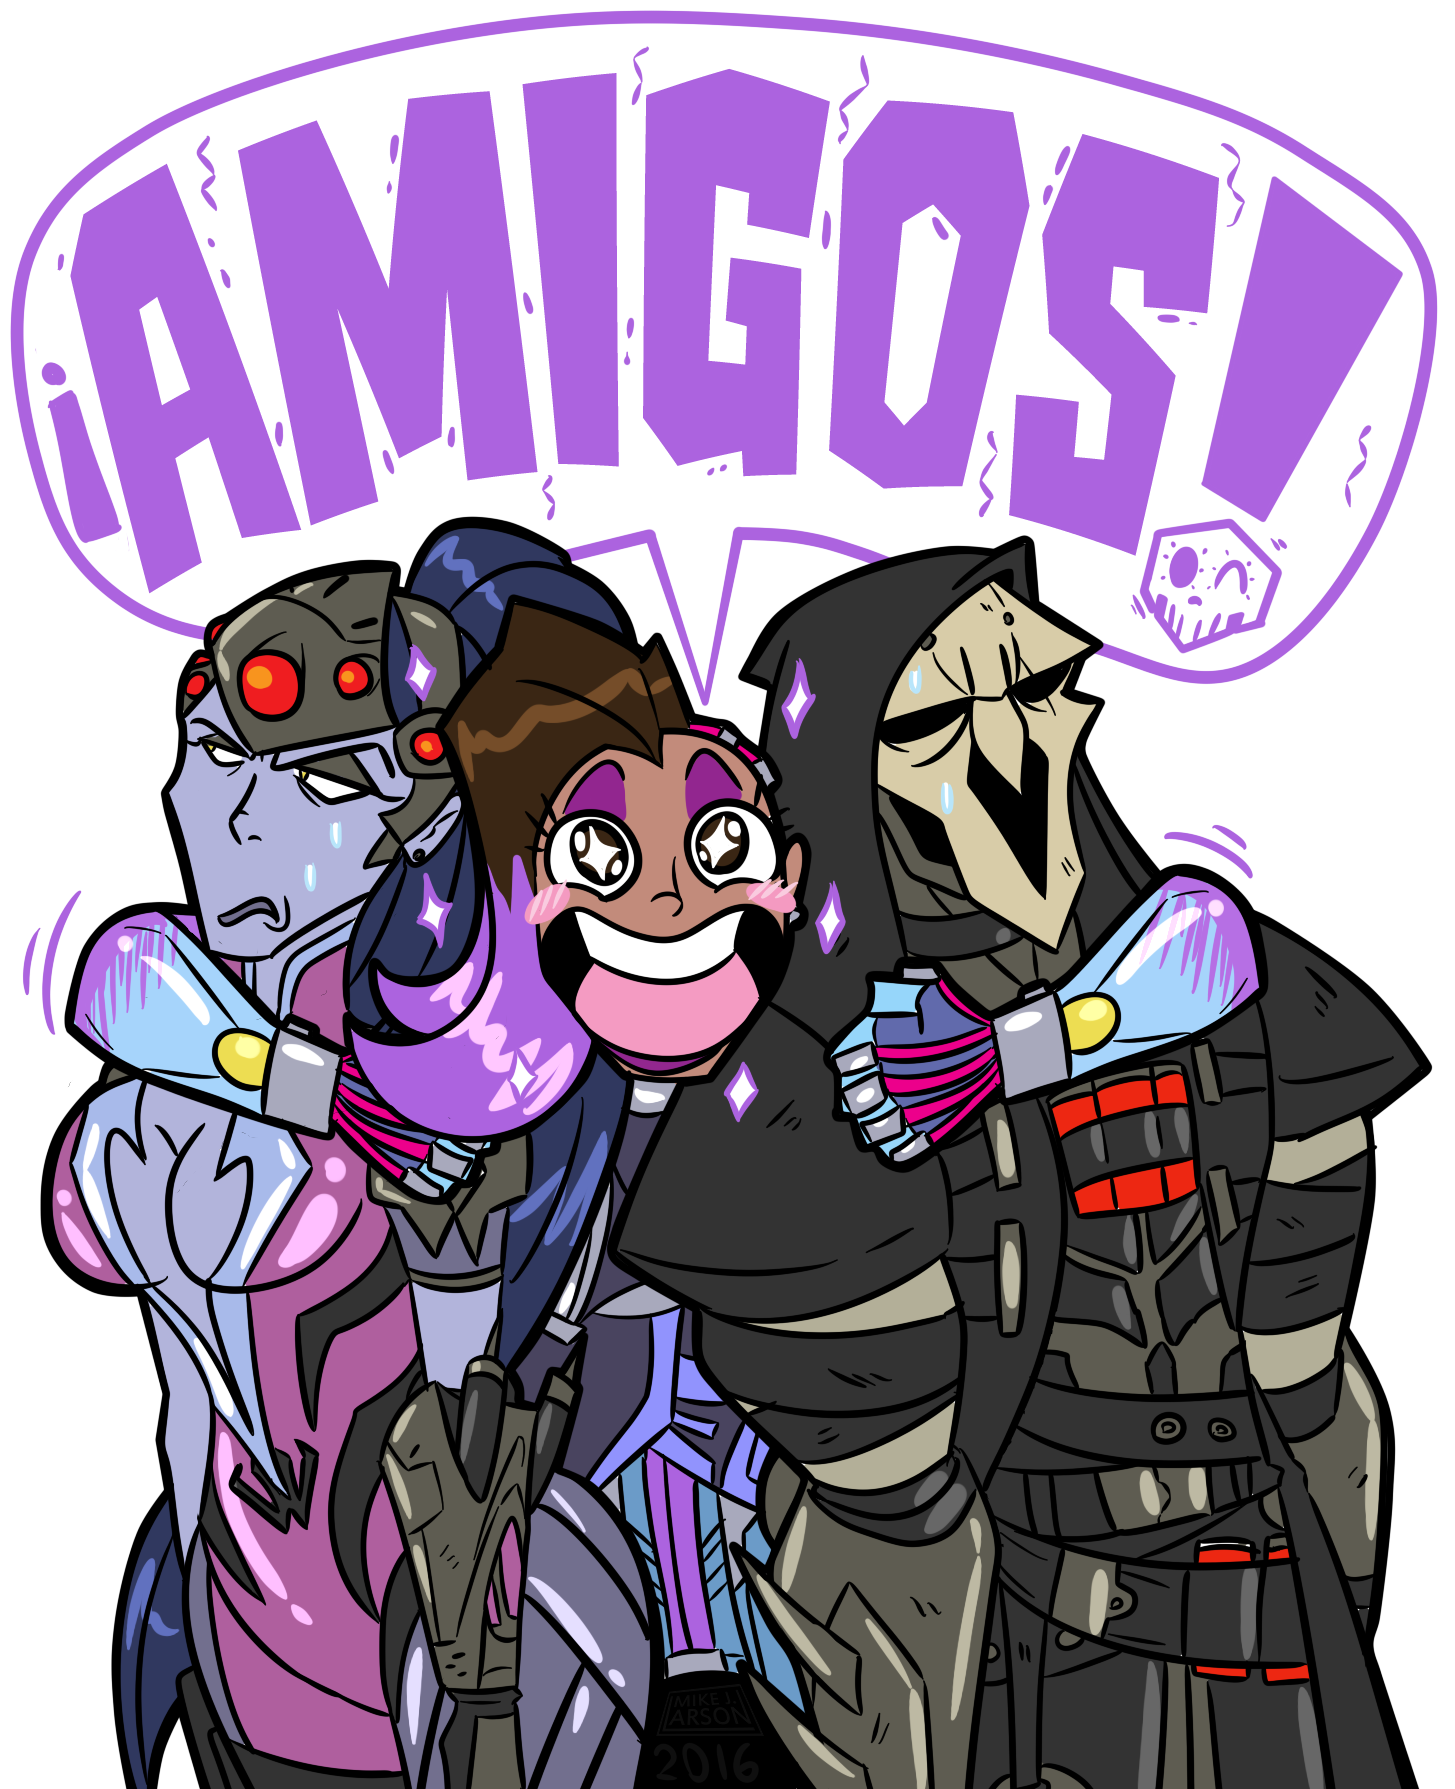 Comic book style lady laughing clipart image royalty free library Sombra loves everyone :) | Overwatch | Pinterest | Overwatch ... image royalty free library